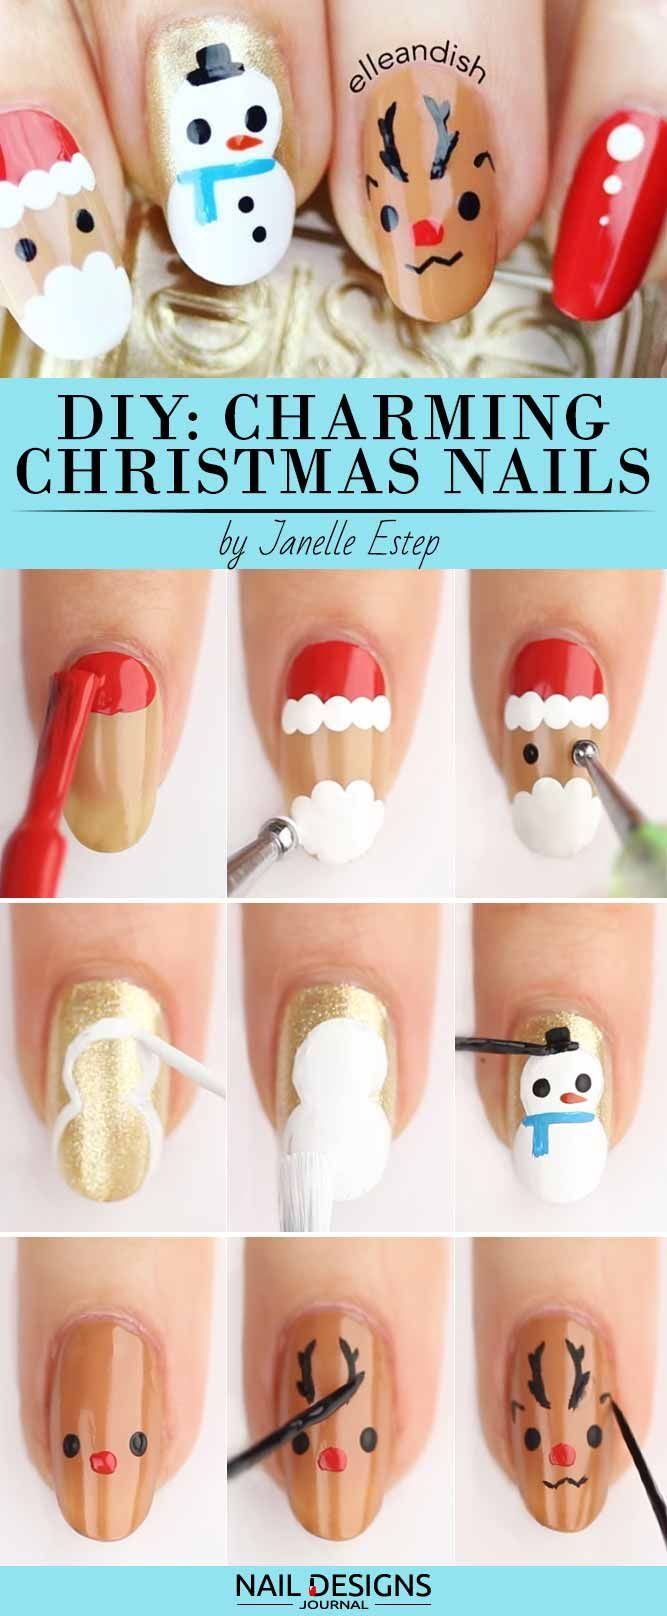 Are you ready to learn how to do the cutest Christmas nail art? We hope so, as w…